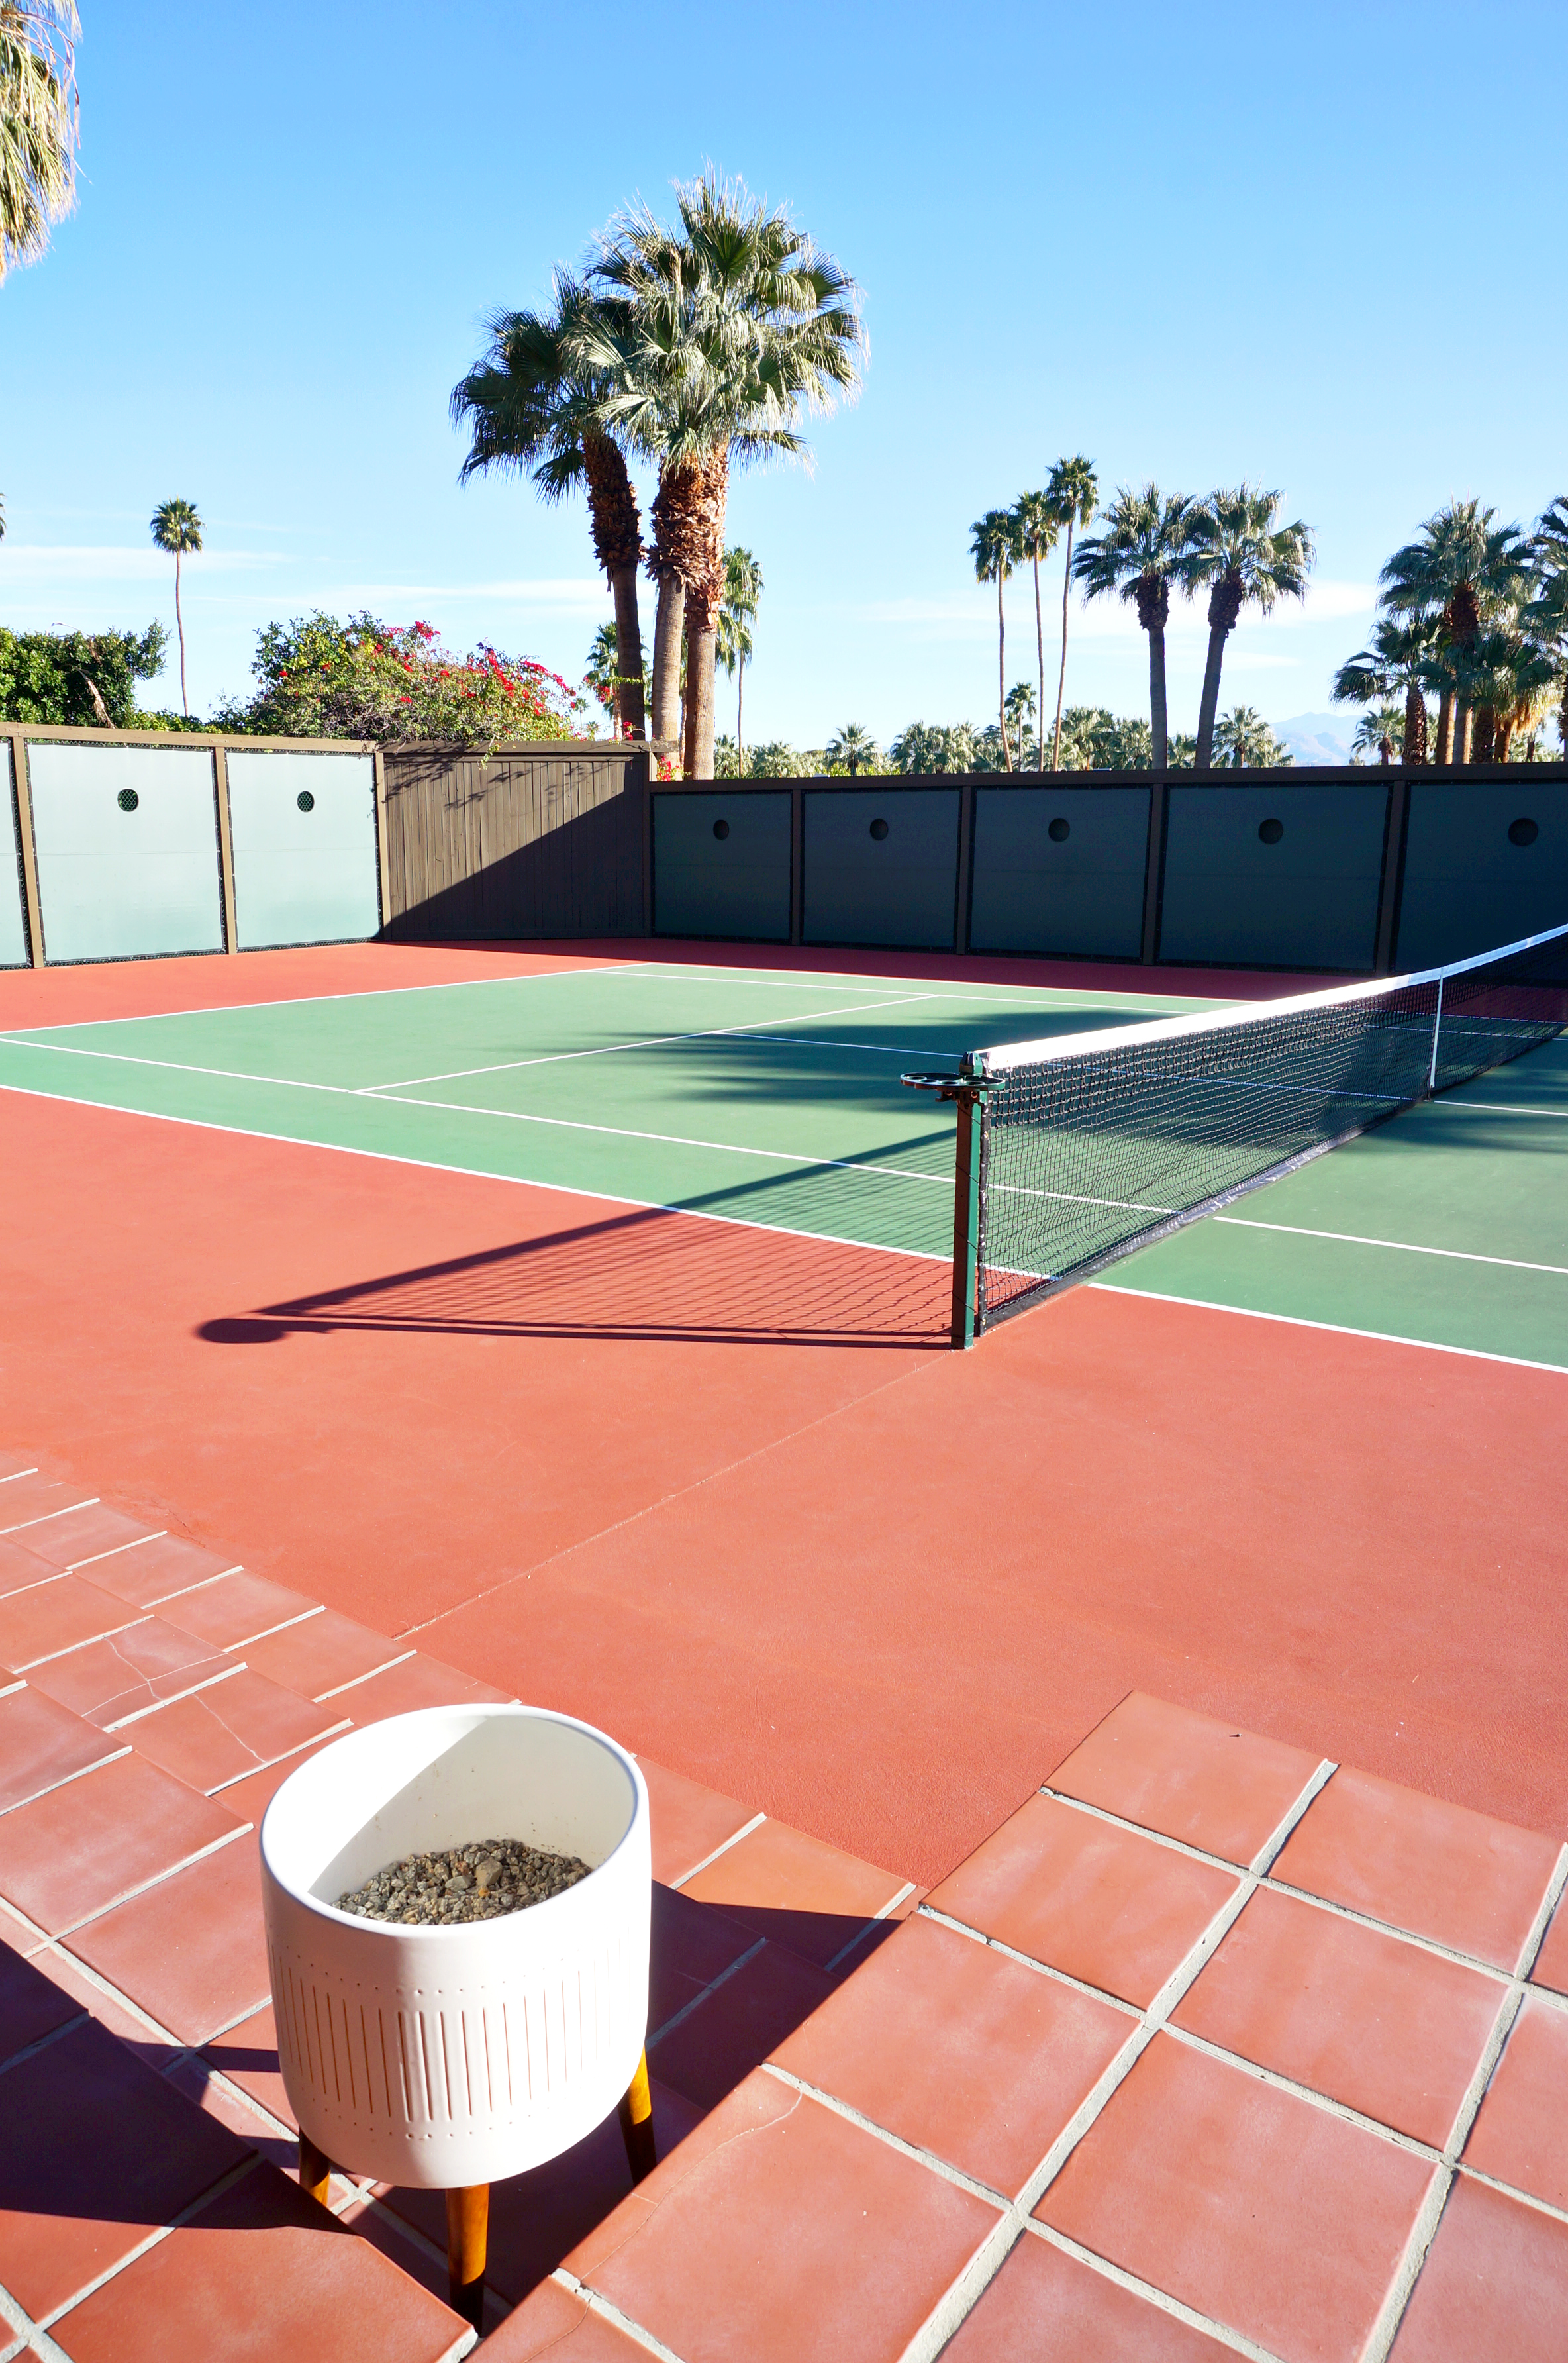 Palm Springs loves its Tennis- the court at the Kirk Douglas estate